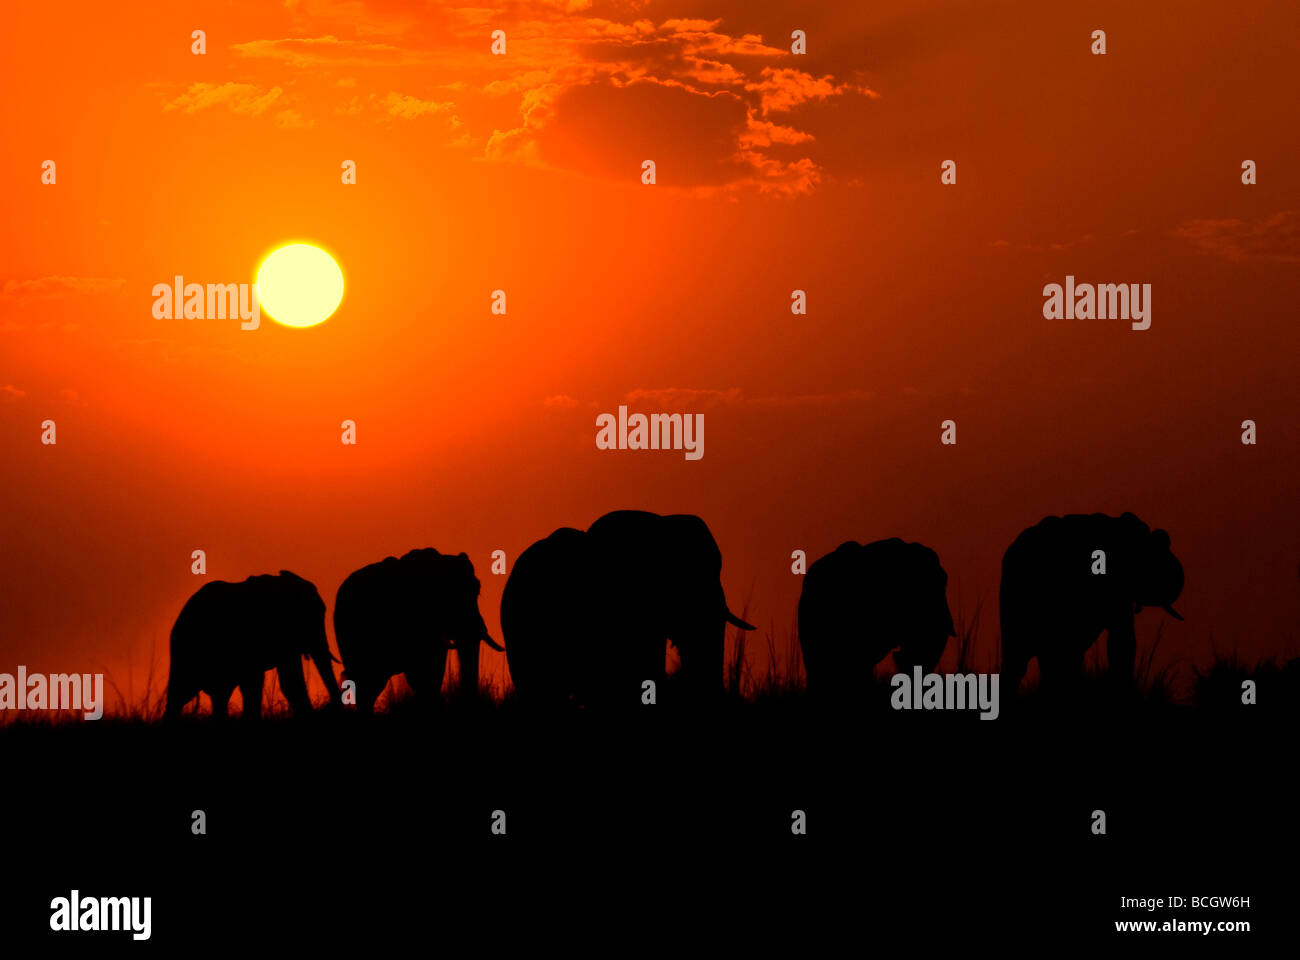 Elephant herd at sunset Chobe river, Chobe National Park, Botswana - Stock Image